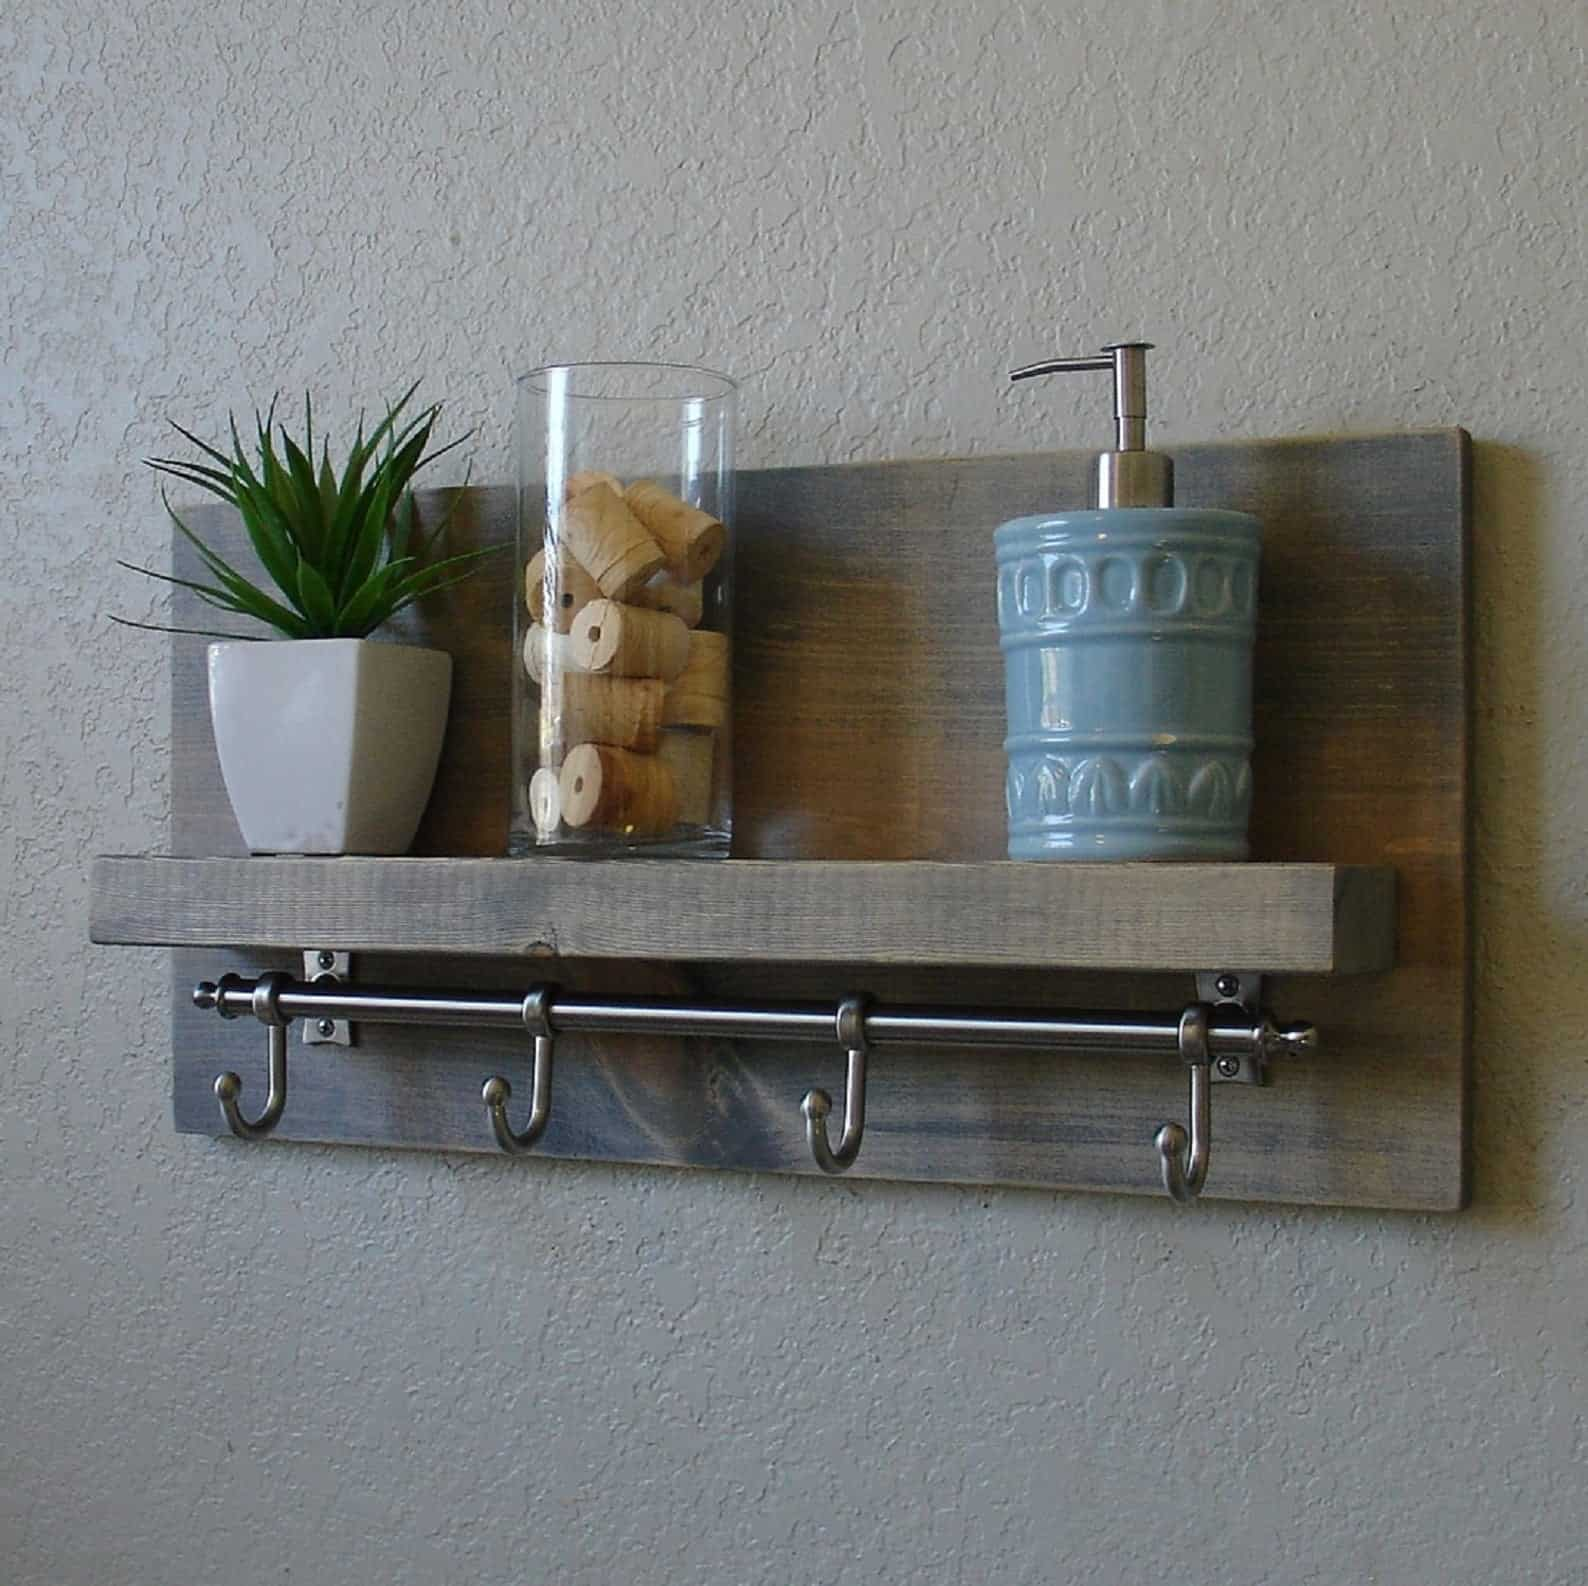 DIY Shelf Rack Tutorial